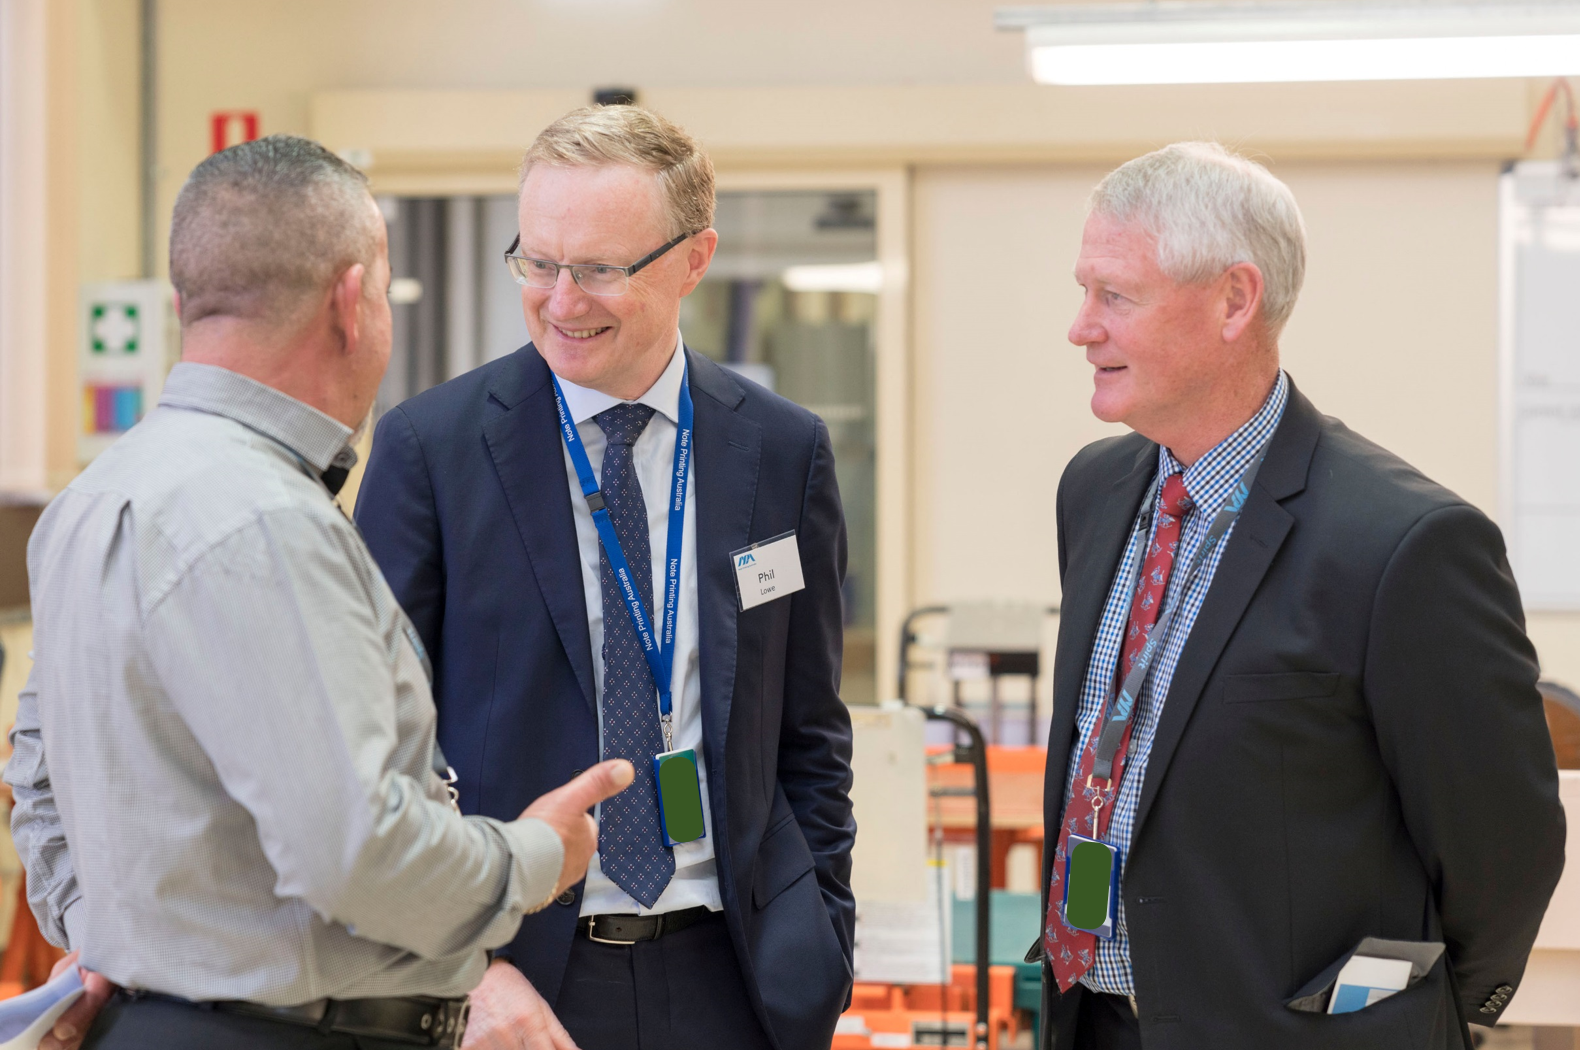 RBA Governor Phillip Lowe chats with NPA Passports Production Manager Roy De Freitas as CEO Malcolm McDowell looks on.